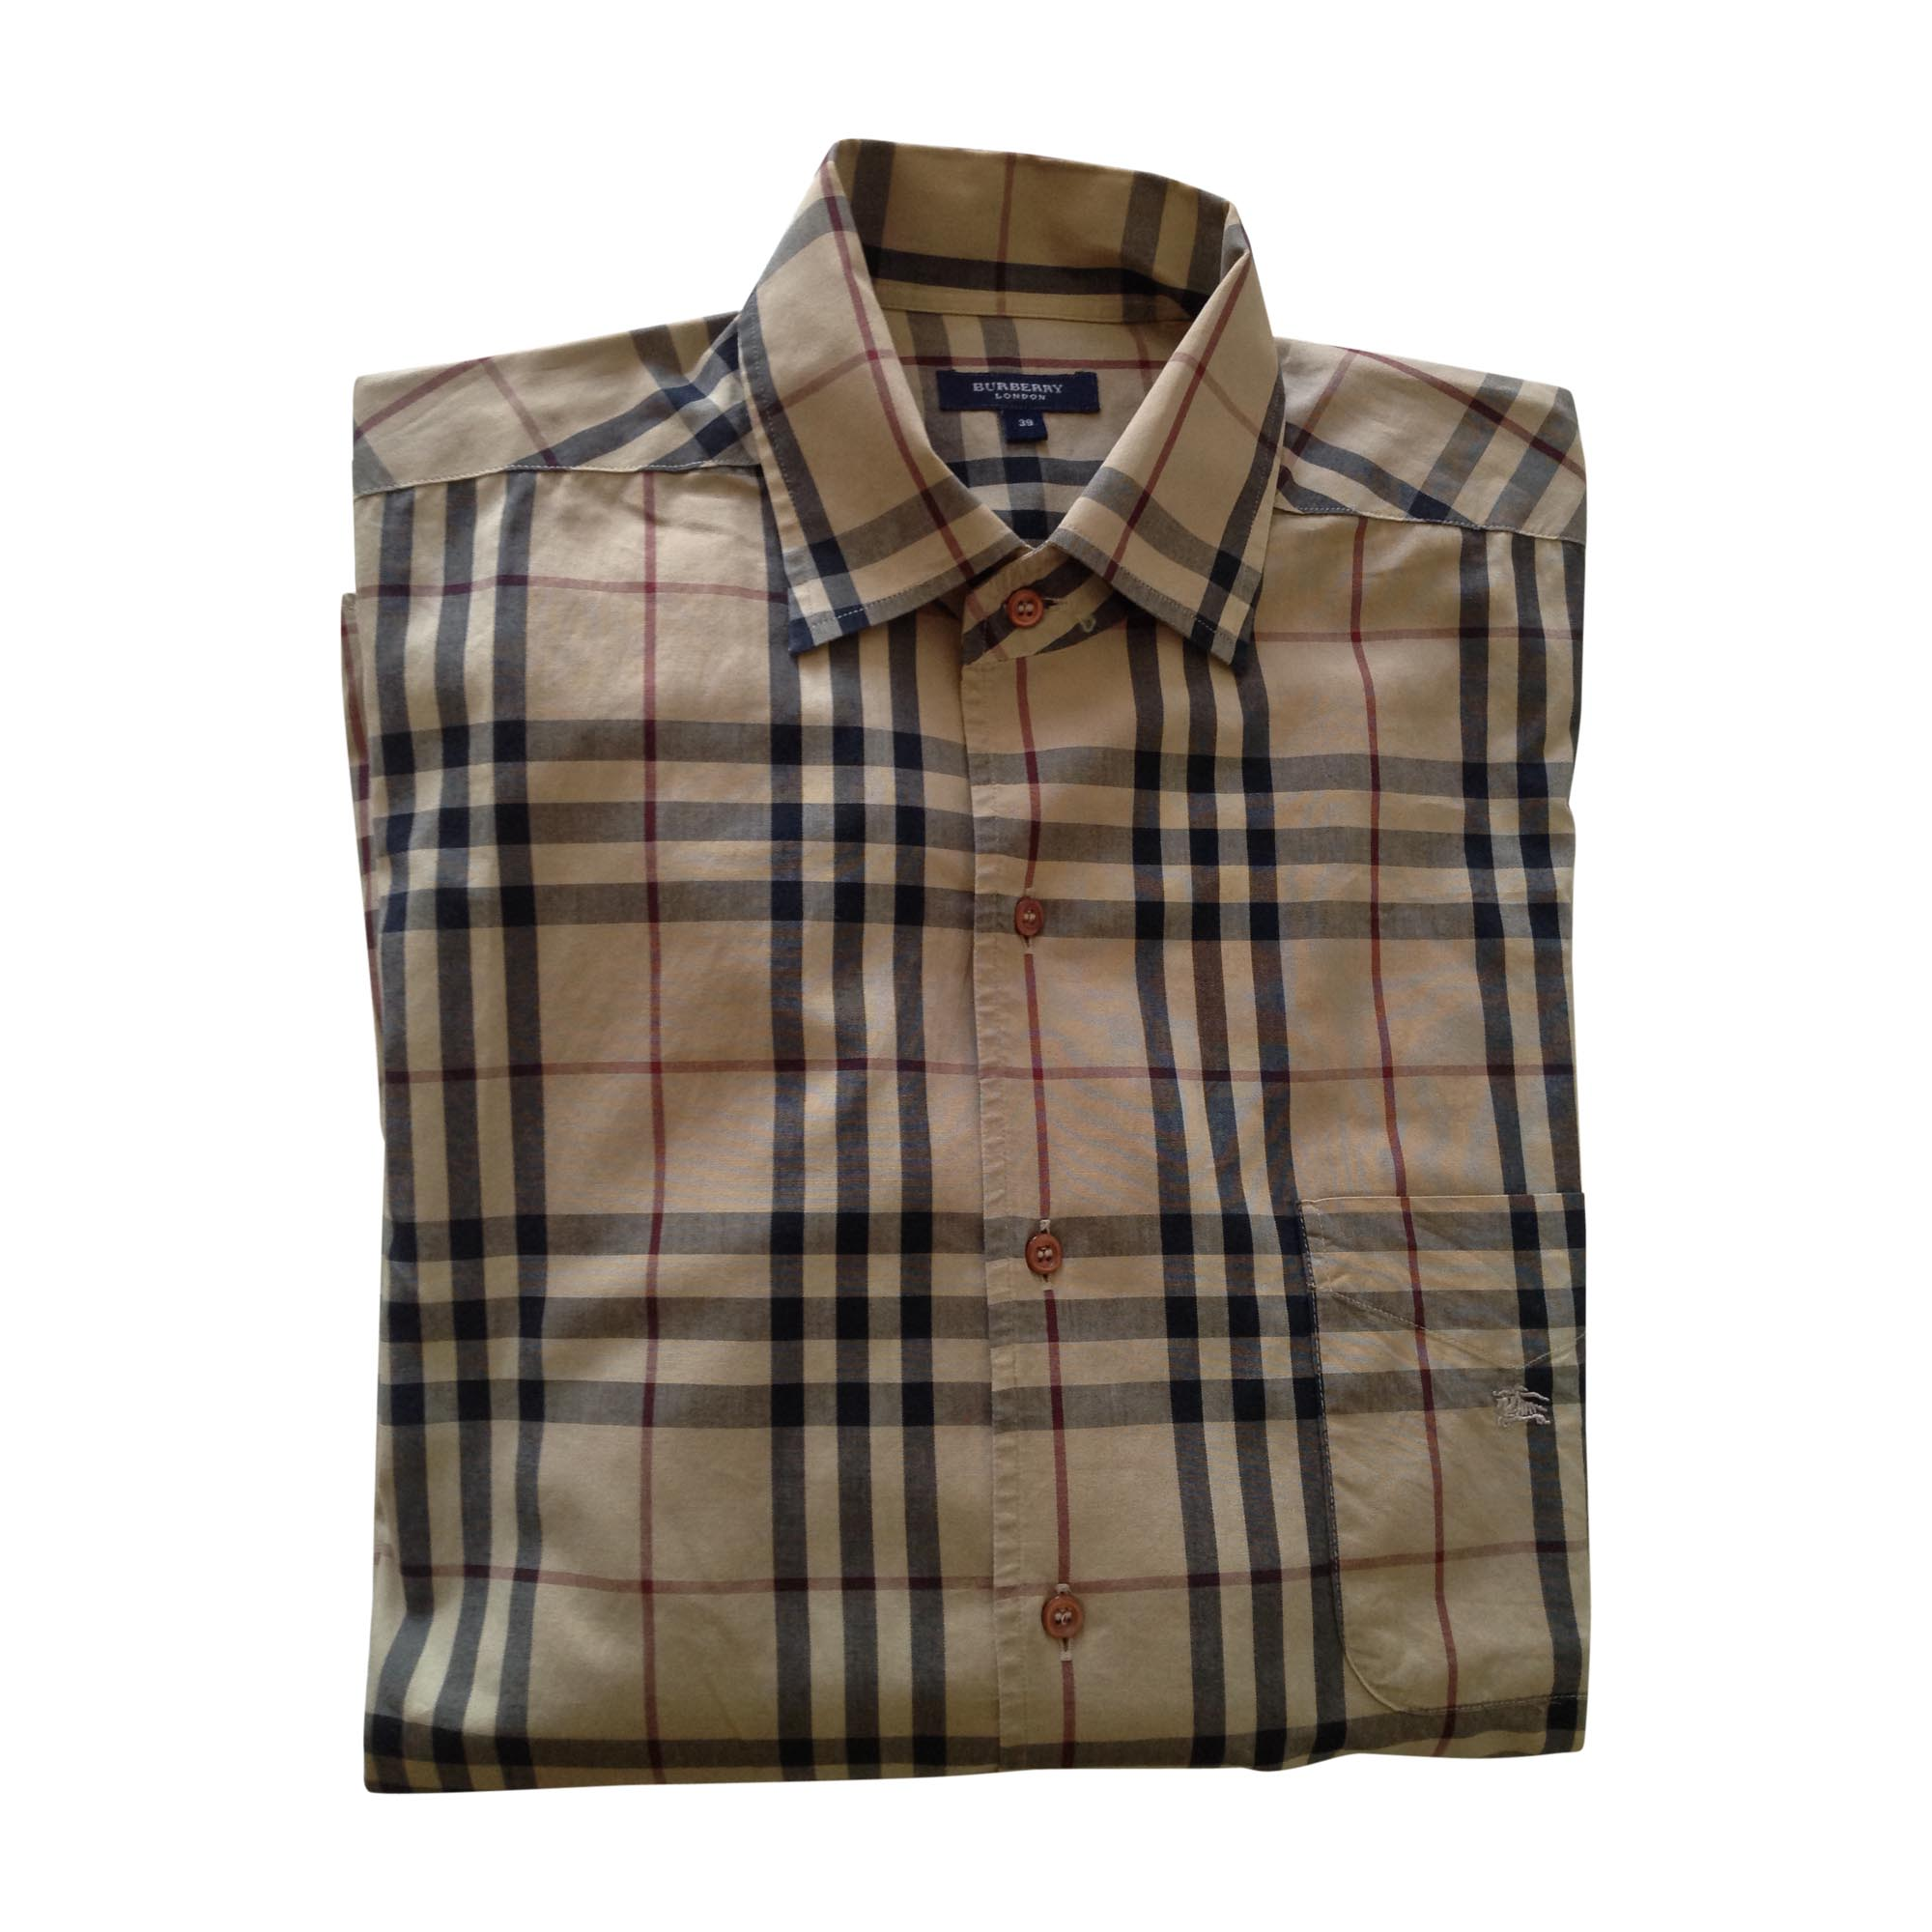 bb1409d2a4b2 Chemise BURBERRY 39 40 (M) beige - 7644455